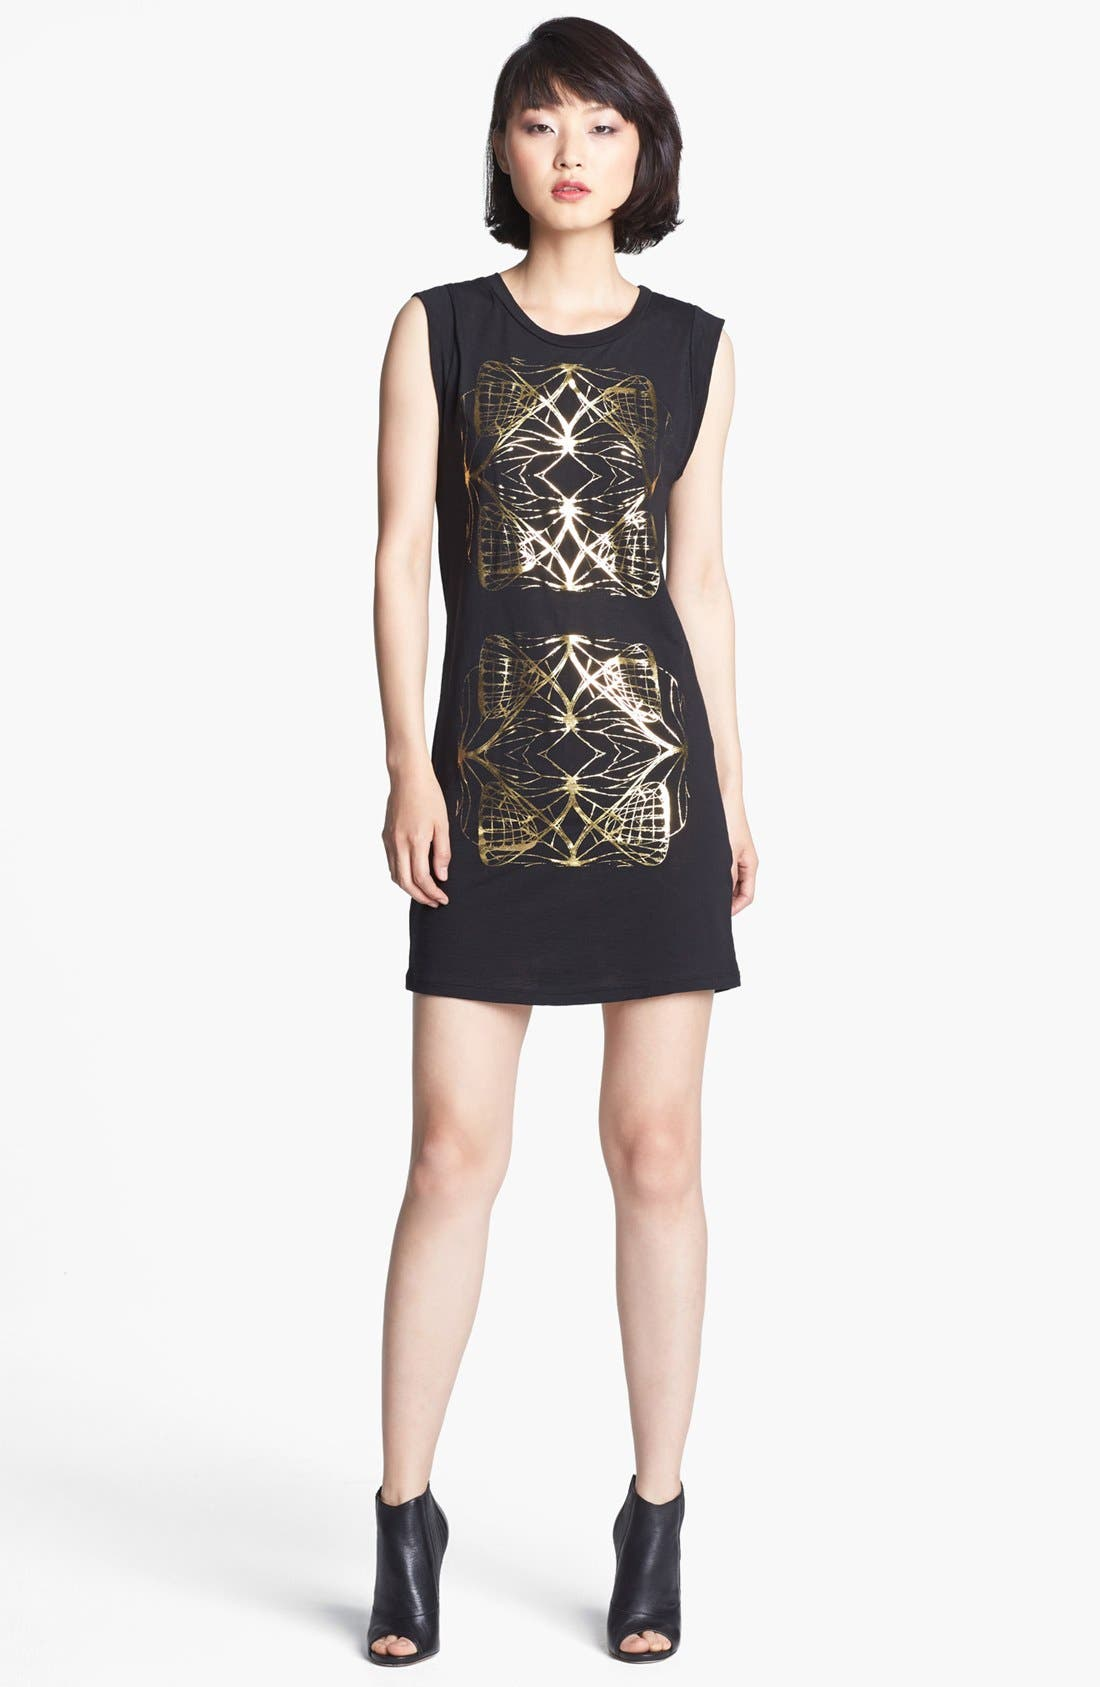 Alternate Image 1 Selected - Kelly Wearstler 'Diamond' Foiled Print Dress